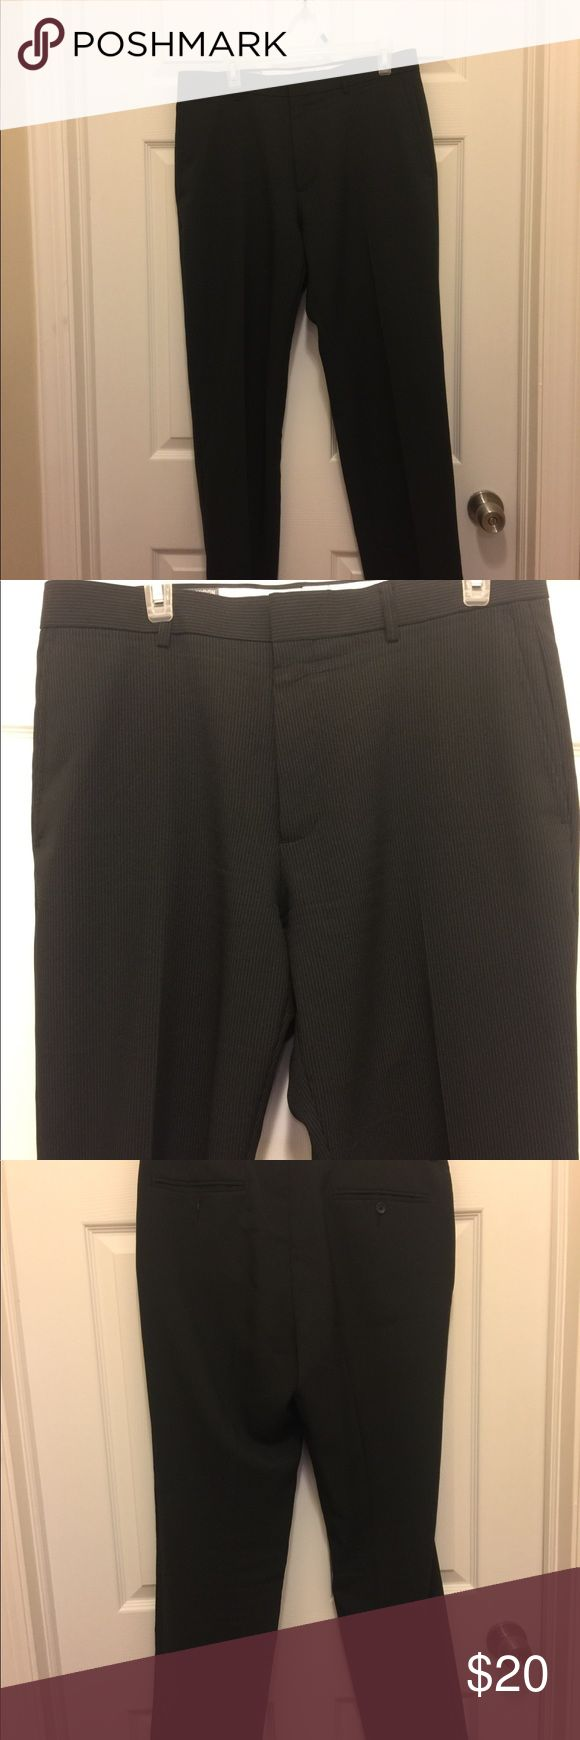 Michael Brandon dress pants Michael Brandon slim fit dress pants. Color is black with white pinstripes. Gently worn; great condition! Only flaw is the button on the back left pocket is missing (can be easily sewed back on with a replacement button). Michael Brandon Pants Dress